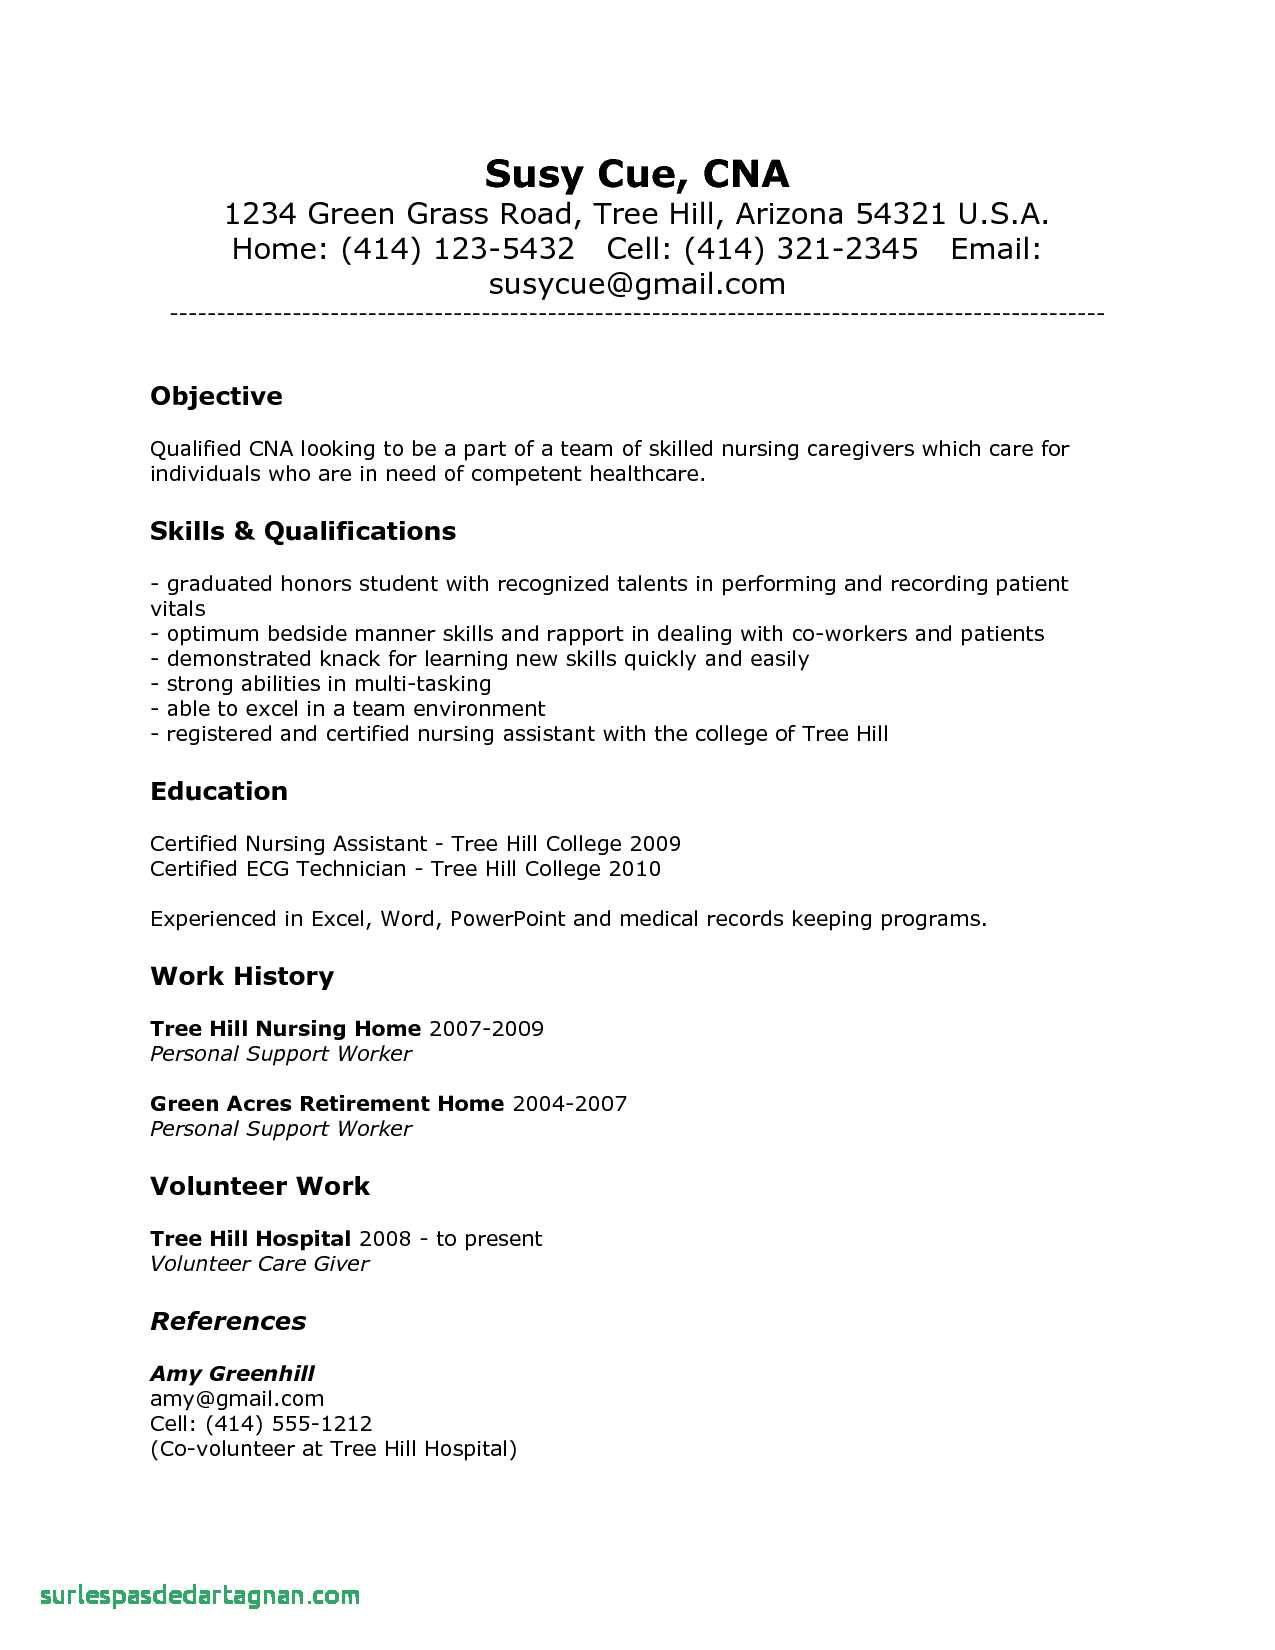 pin on resume templates nursing assistant duties for pattern master current examples Resume Nursing Assistant Duties For Resume